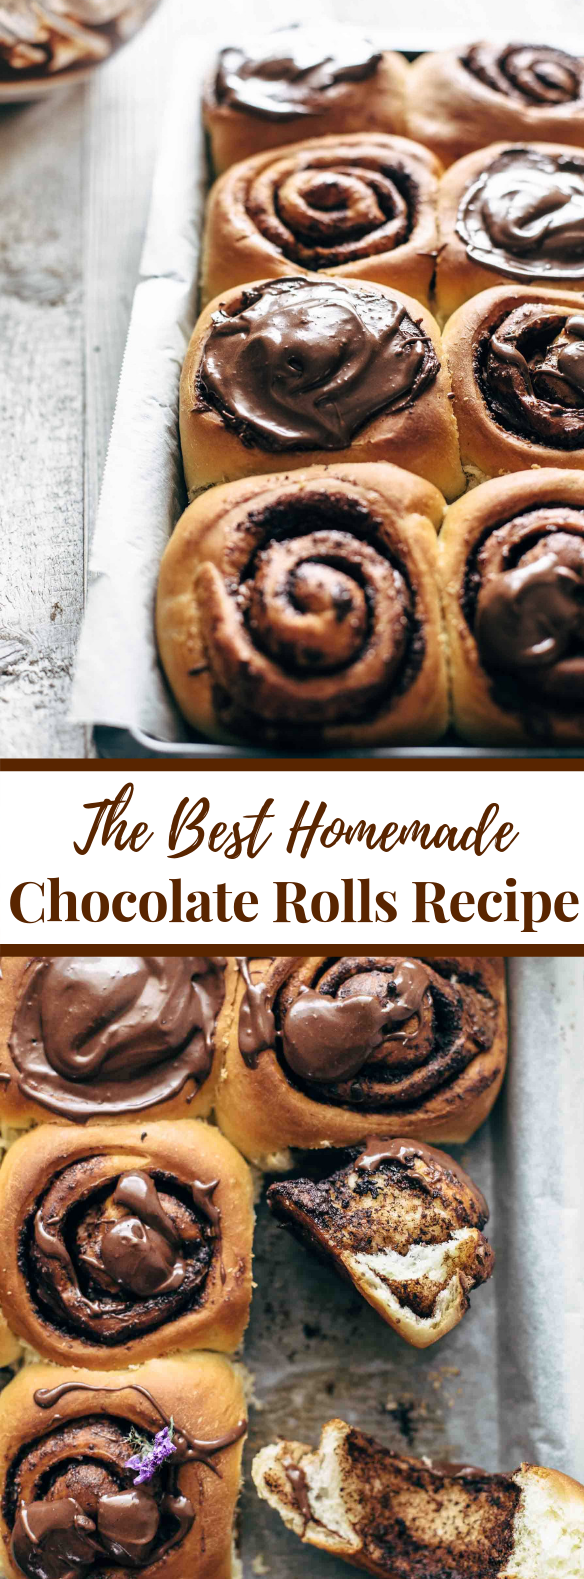 THE BEST HOMEMADE CHOCOLATE ROLLS RECIPE #desserts #frostingrecipes